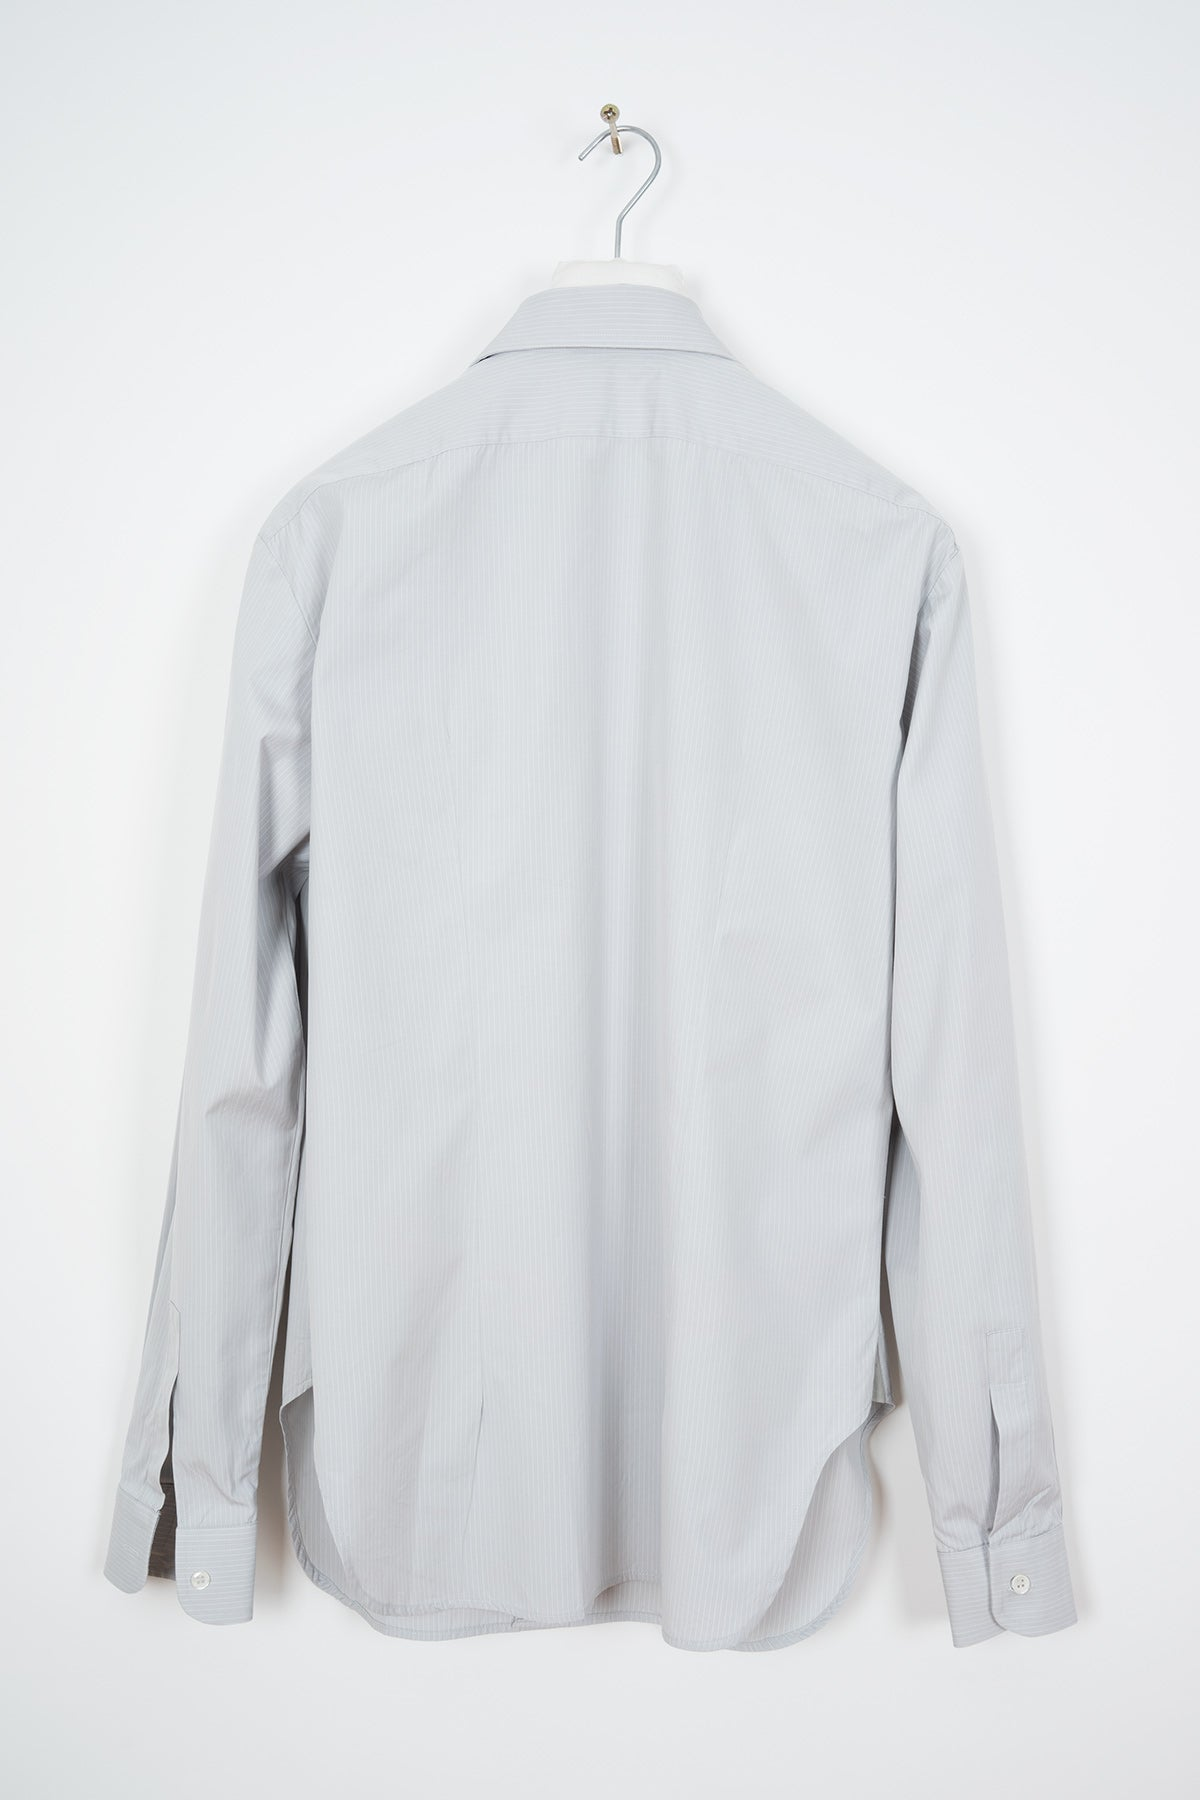 2002 A/W PINSTRIPE GREY BUTTON-DOWN SHIRT WITH 70s ROUND COLLAR